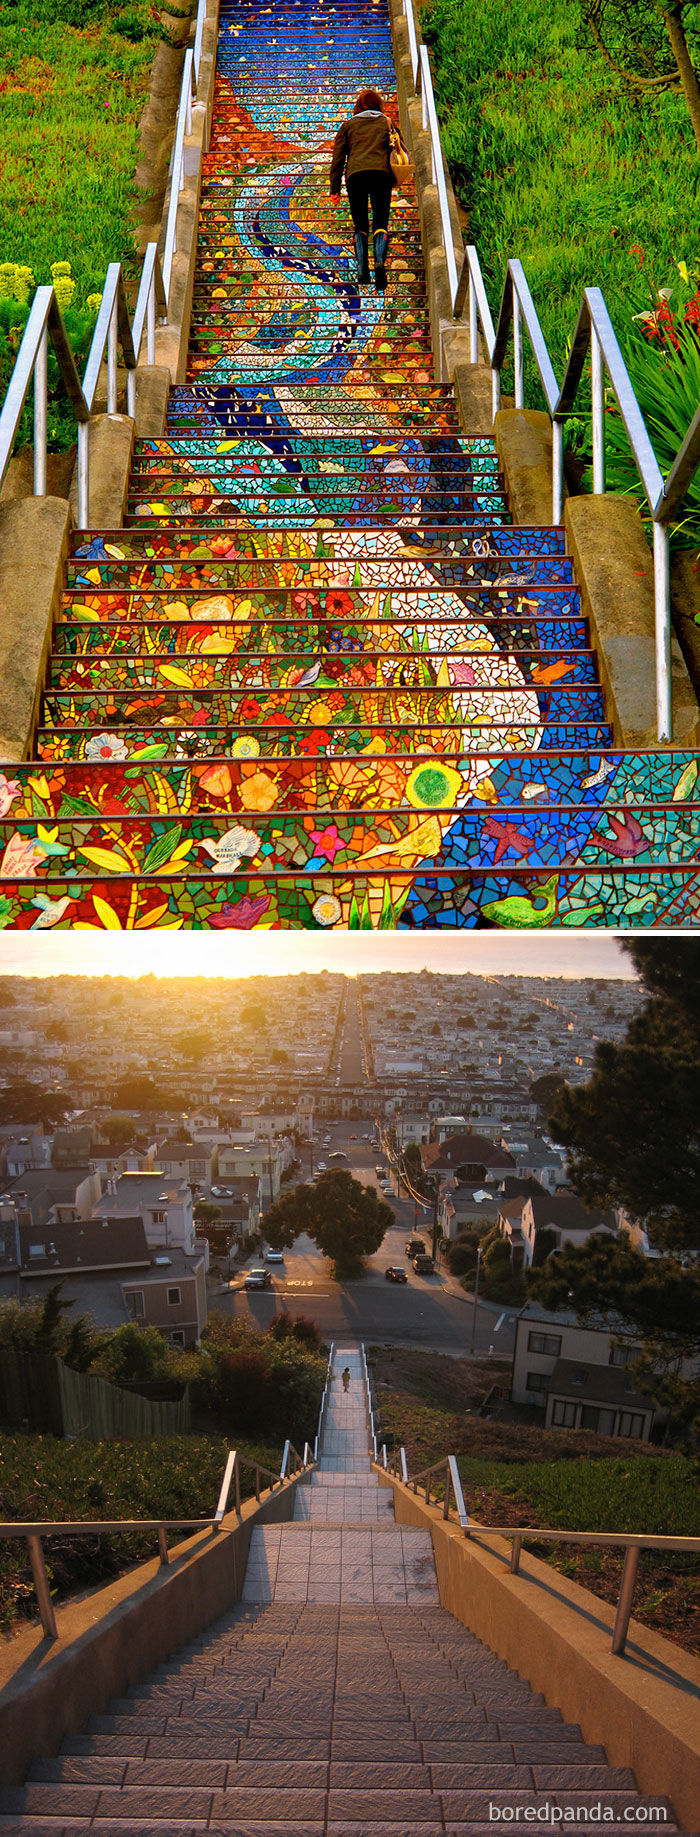 before-after-street-art-transformations6